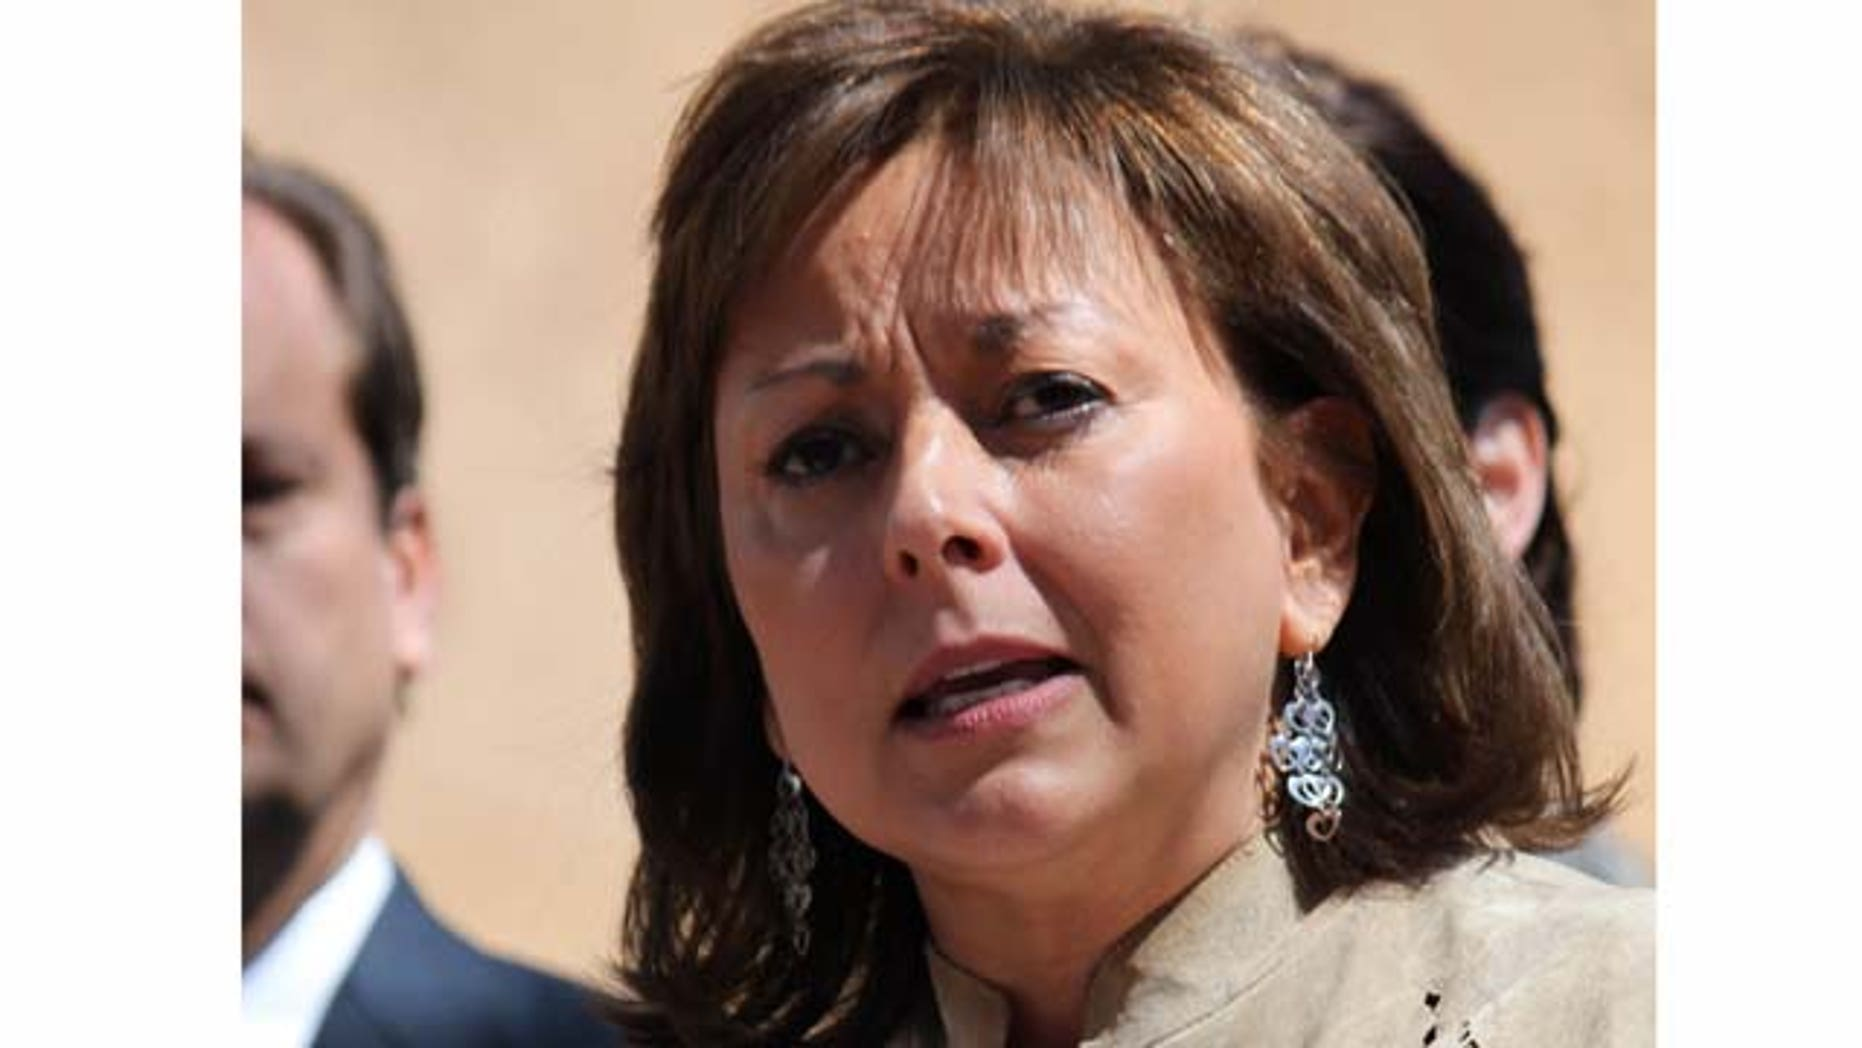 FILE - This March 19, 2011 file photo shows Gov. Susana Martinez speaking at a news conference at Wood Gormley Elementary School in Santa Fe, N.M. The governor met with the Hispanic Leadership Network to address reaching Latino voters. (AP Photo/Susan Montoya Bryan, File)